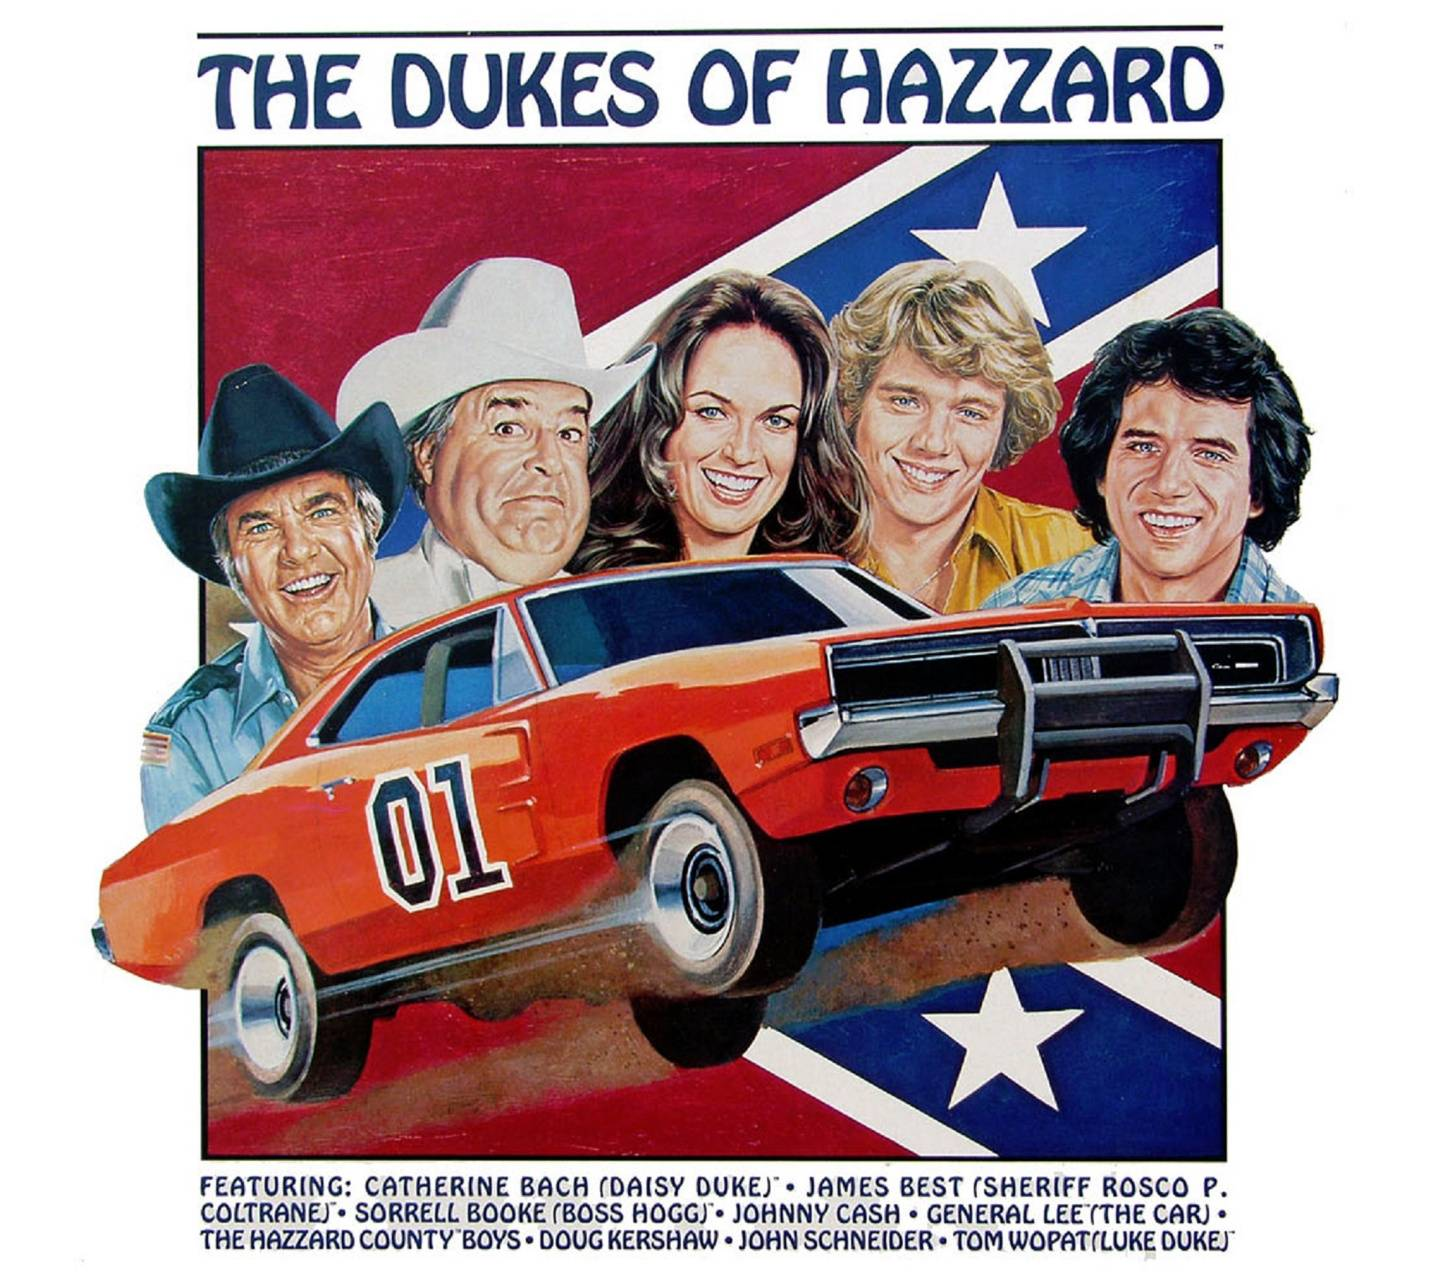 The Dukes of Hazzard wallpaper by RobWms83 - e3 - Free on ZEDGE™